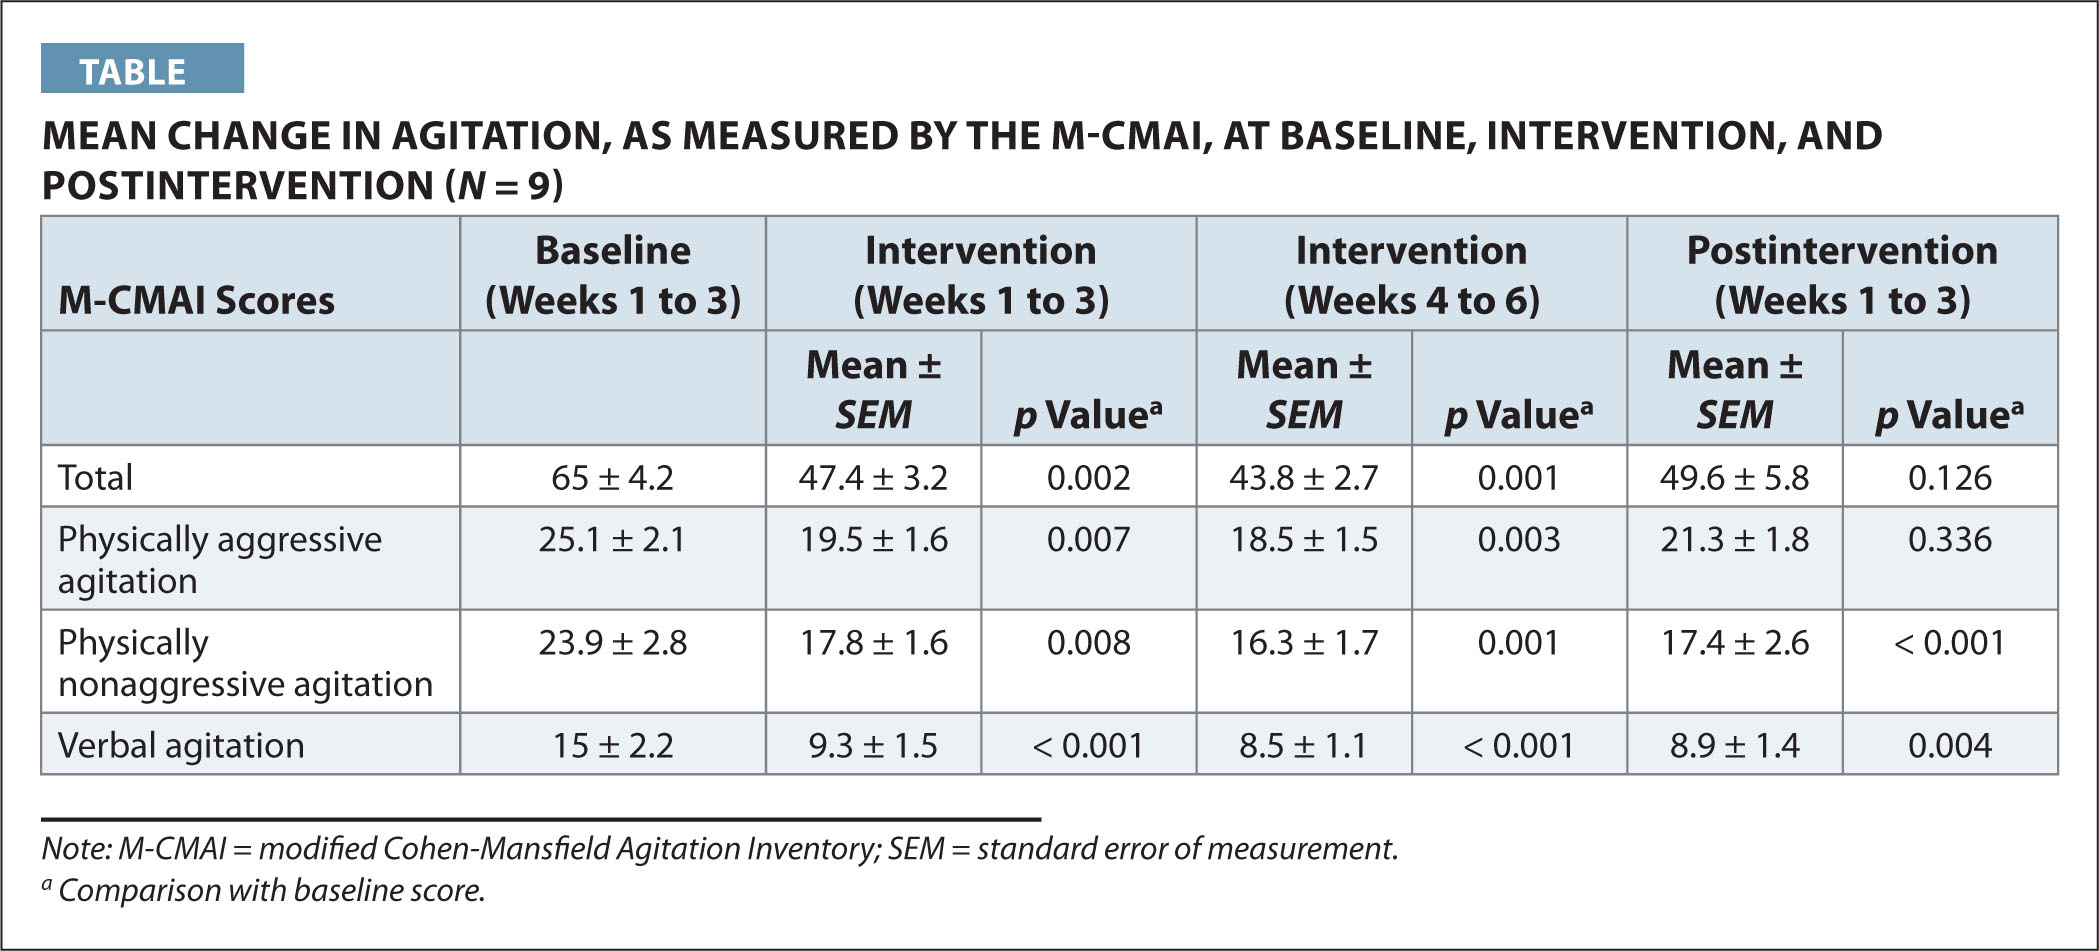 Mean Change in Agitation, as Measured by the M-CMAI, at Baseline, Intervention, and Postintervention (N = 9)